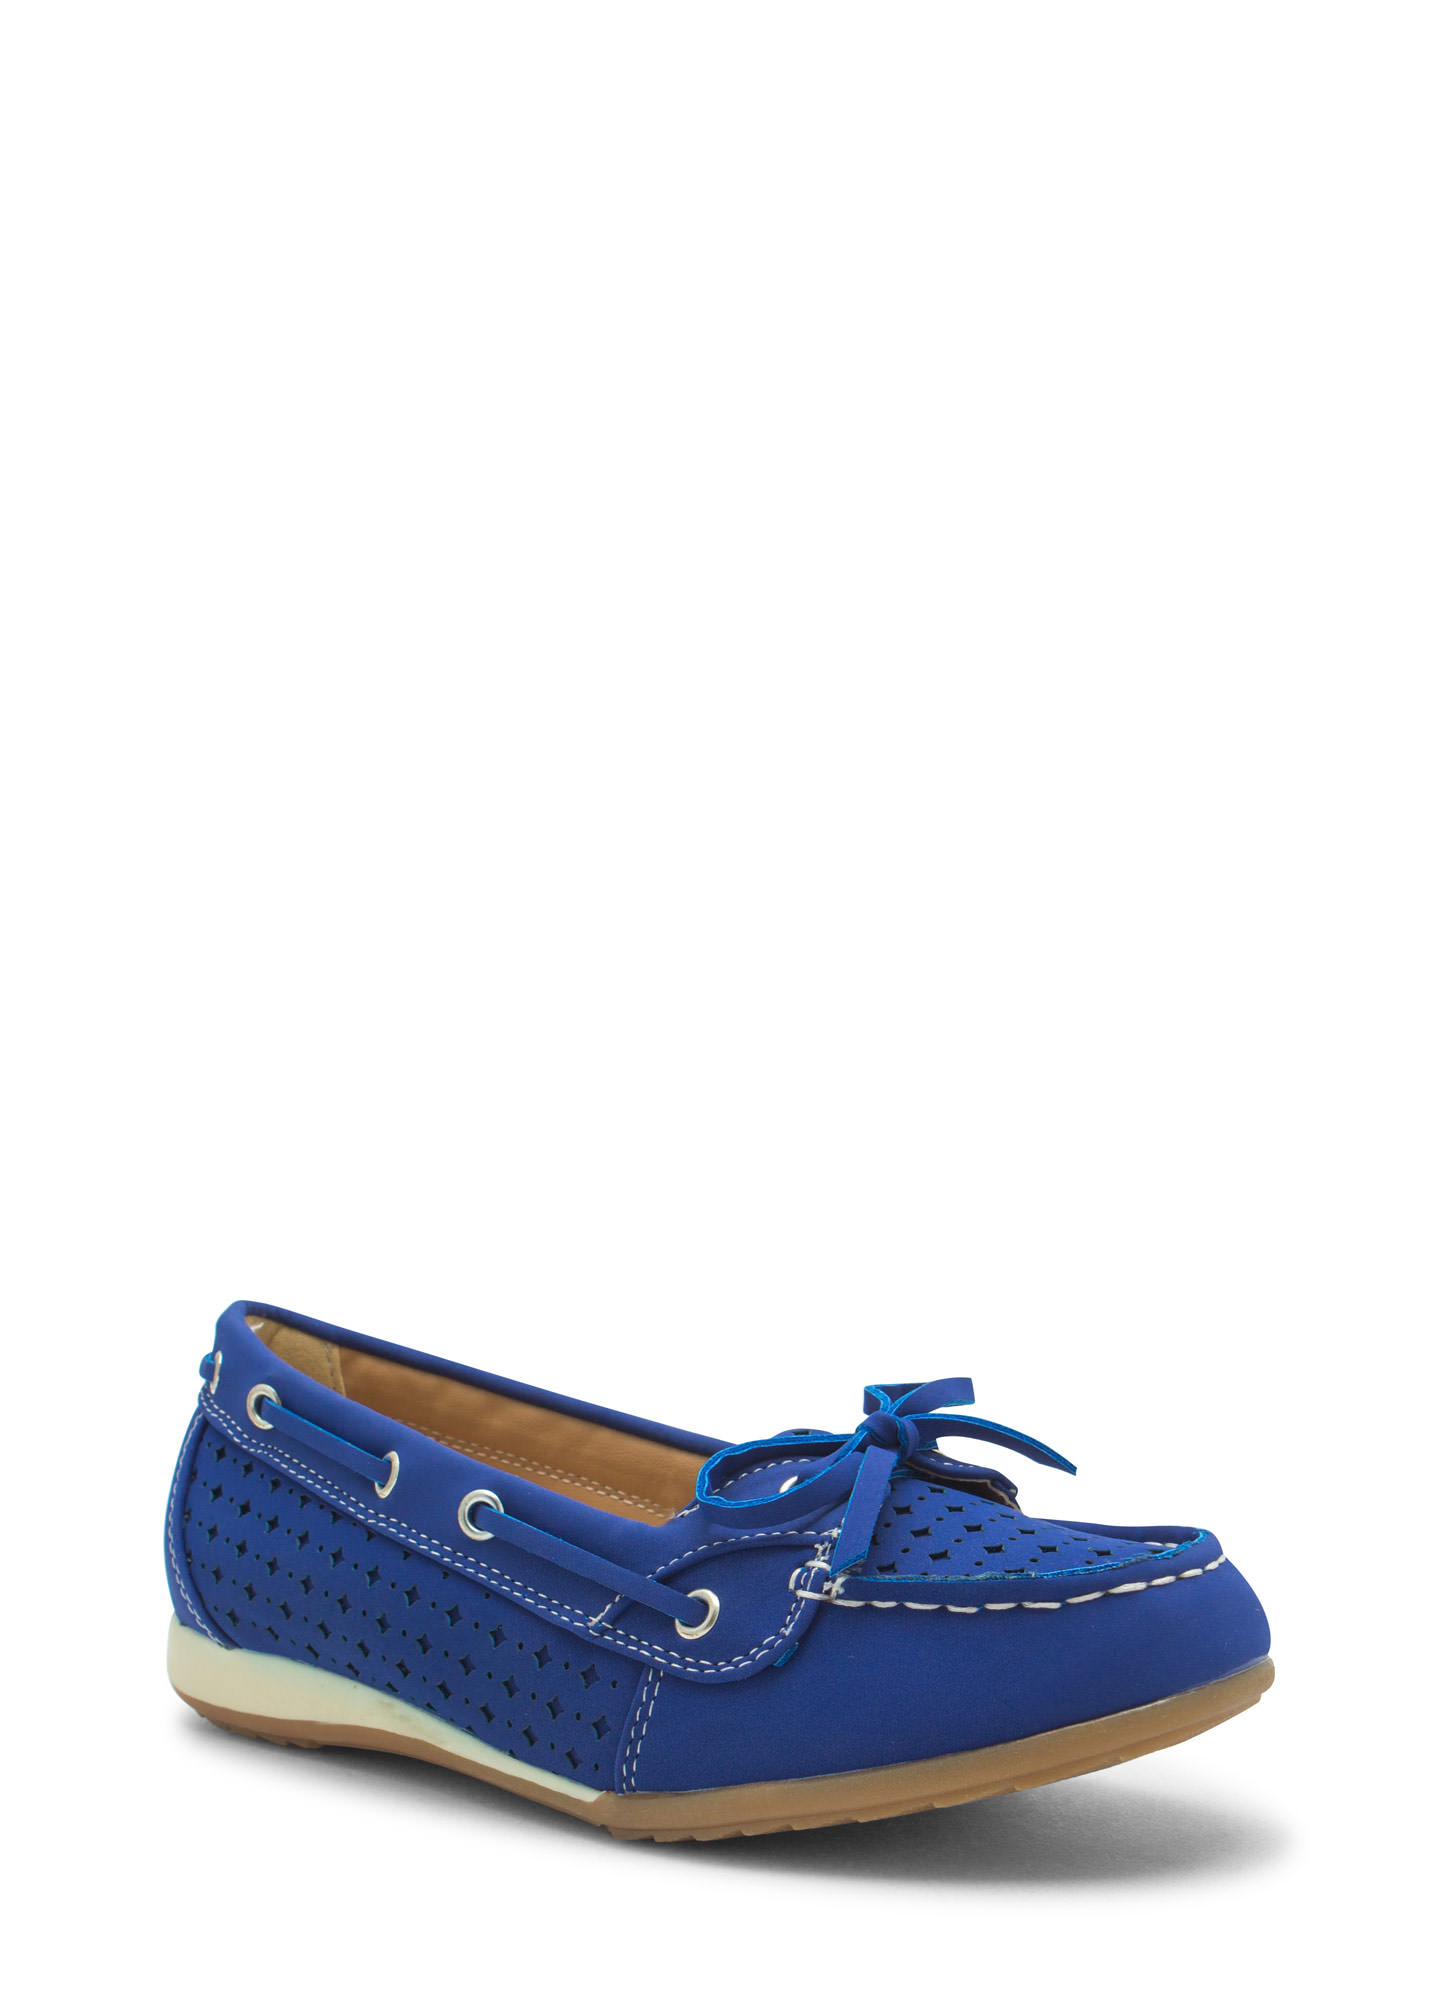 Perforated Faux Nubuck Boat Flats BLUE (Final Sale)